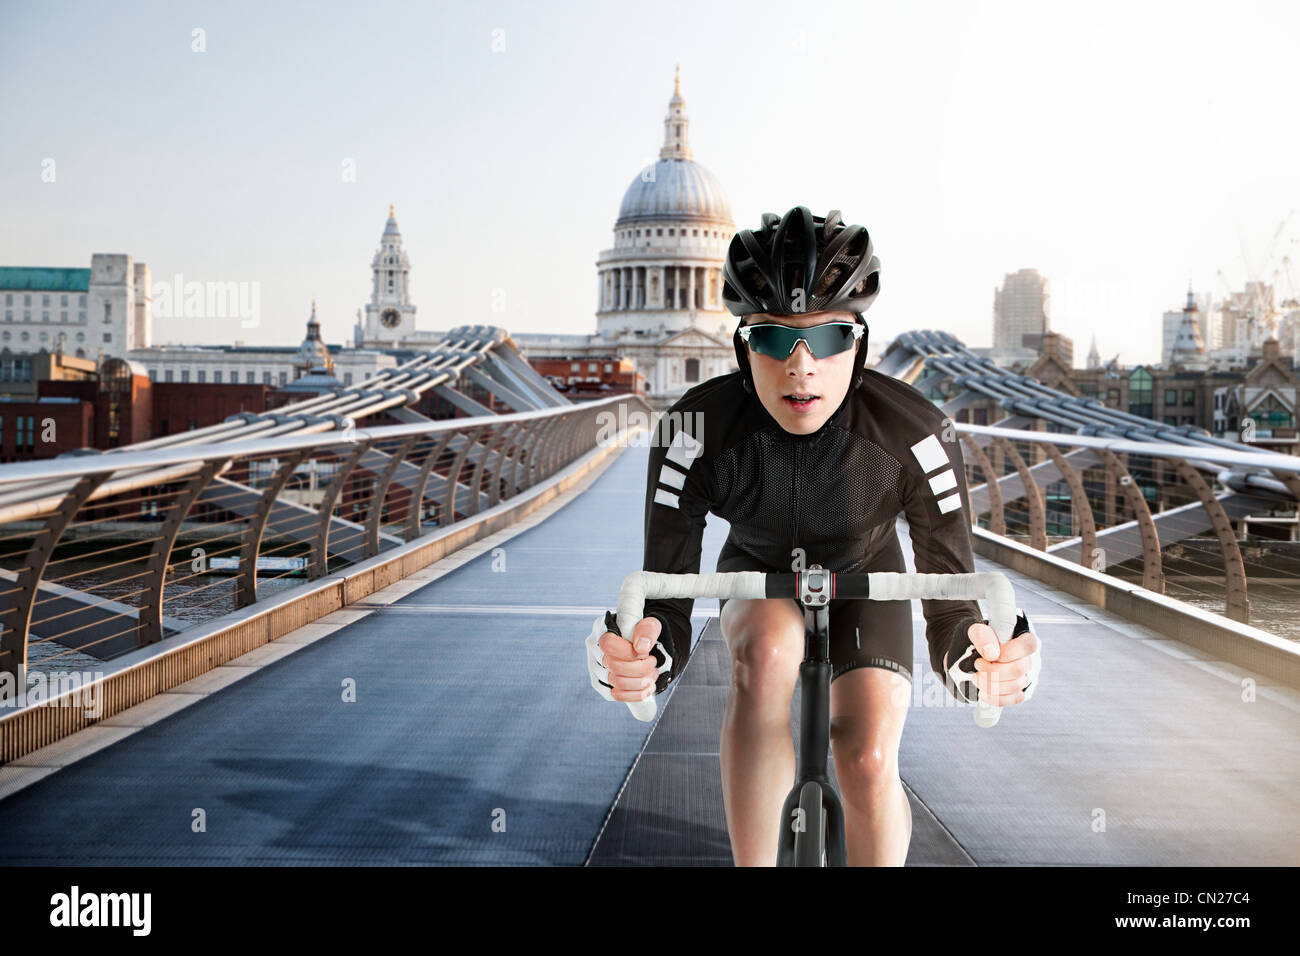 Cyclist cycling over Millennium Bridge, London, England - Stock Image